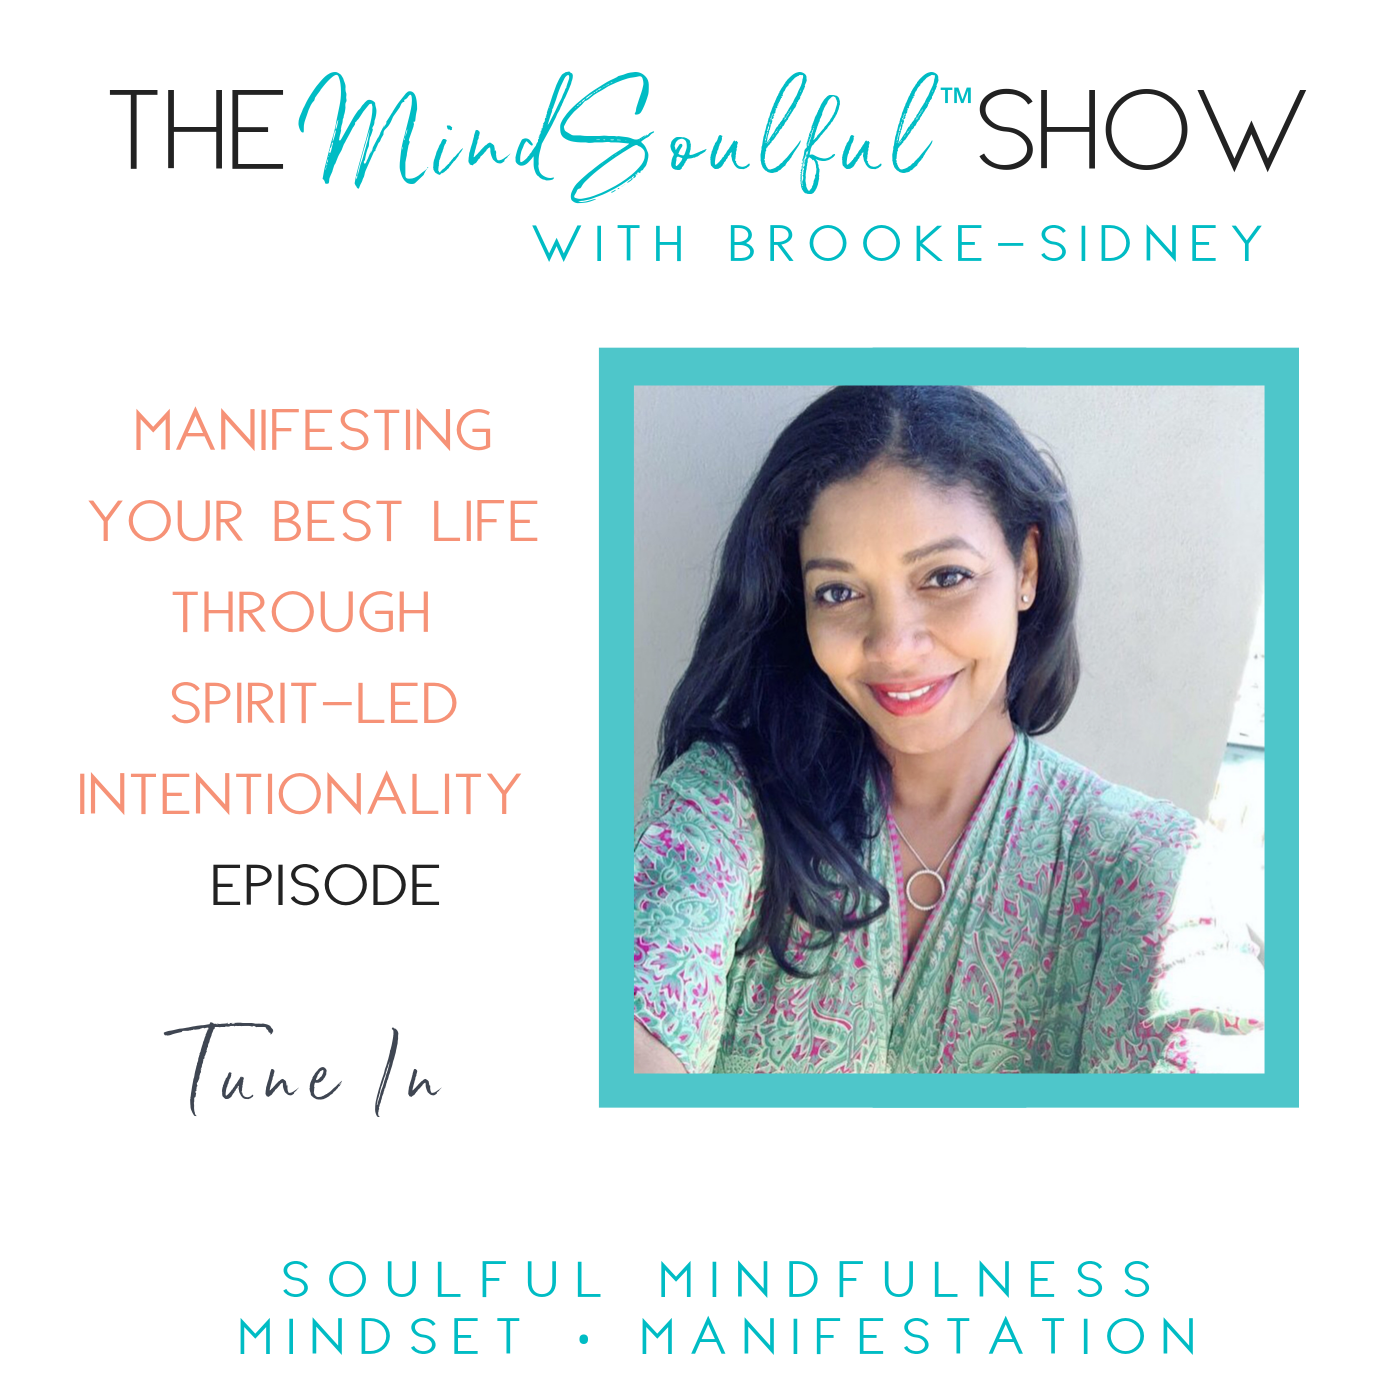 THE MINDSOULFUL SHOW - Manifesting Your Best Life Through Spirit-Led Intentionality Episode.png